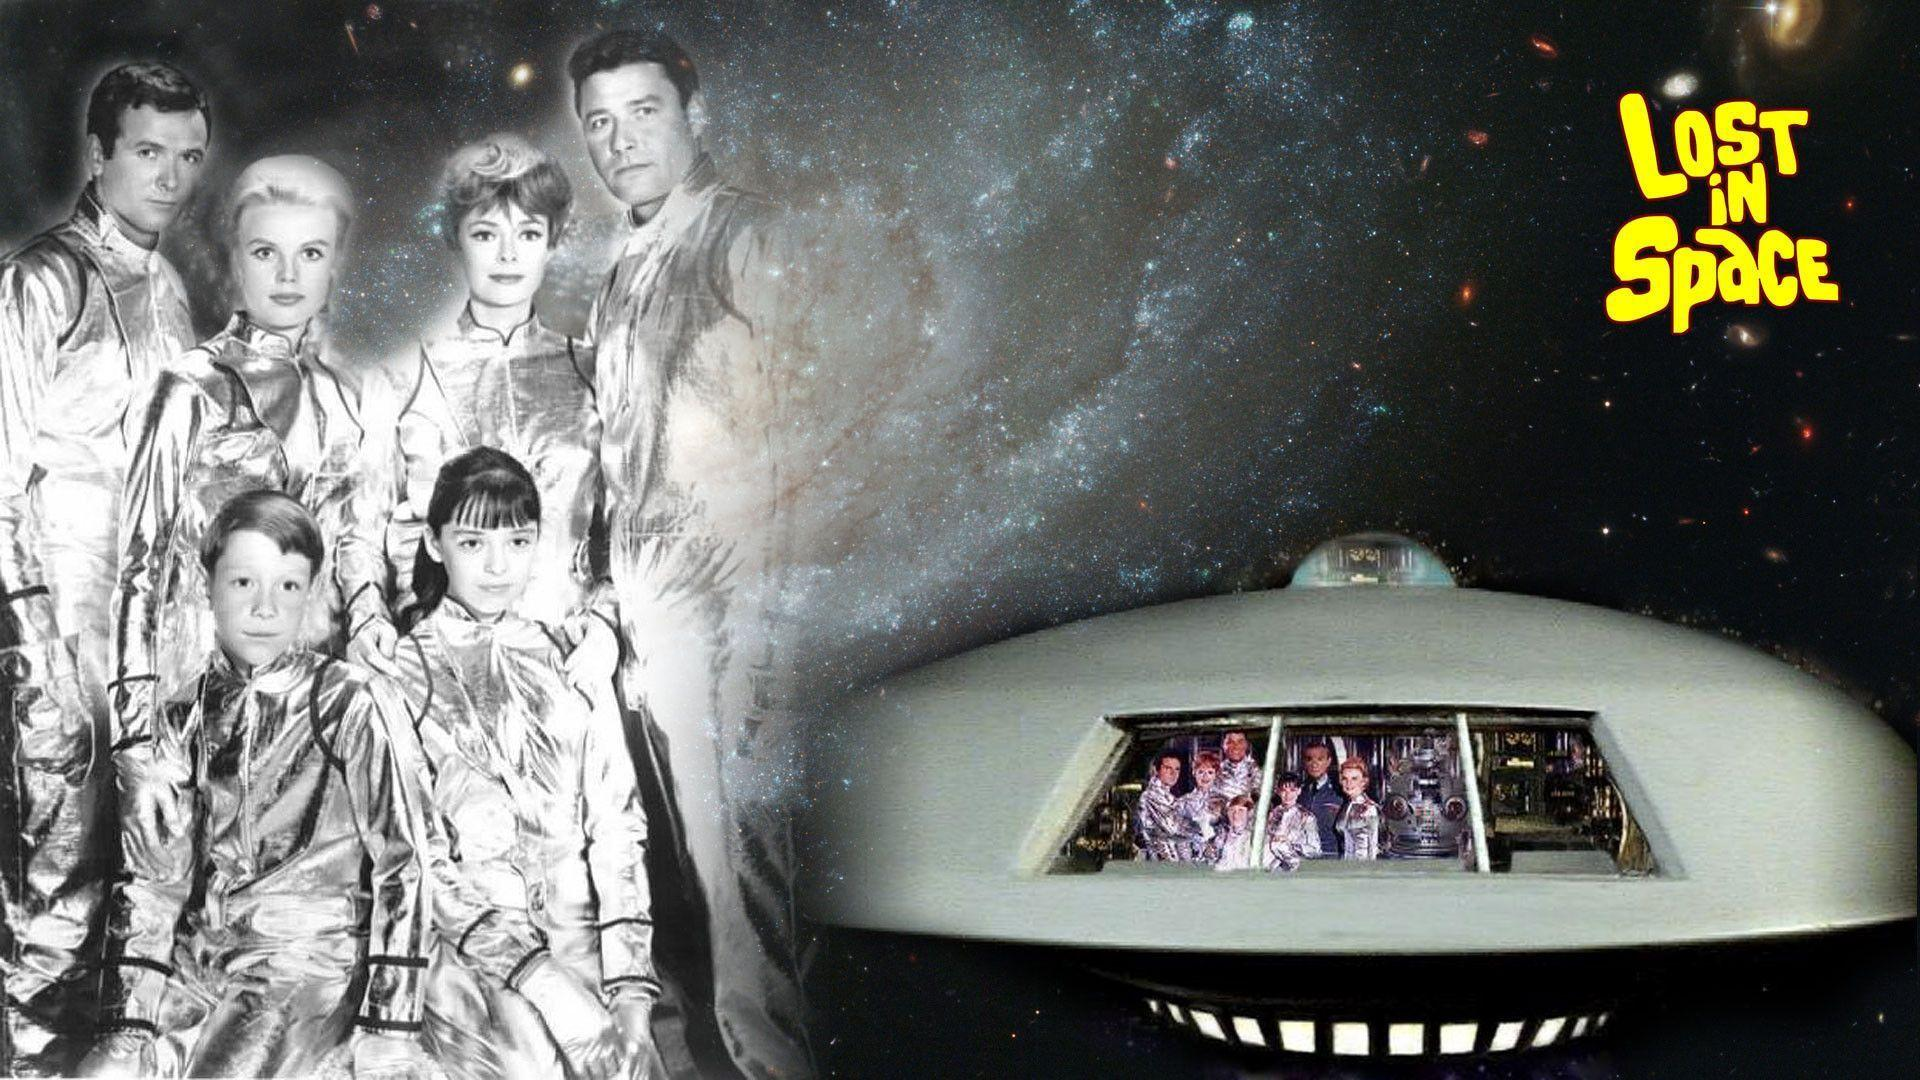 Lost In Space Wallpapers 1920x1080